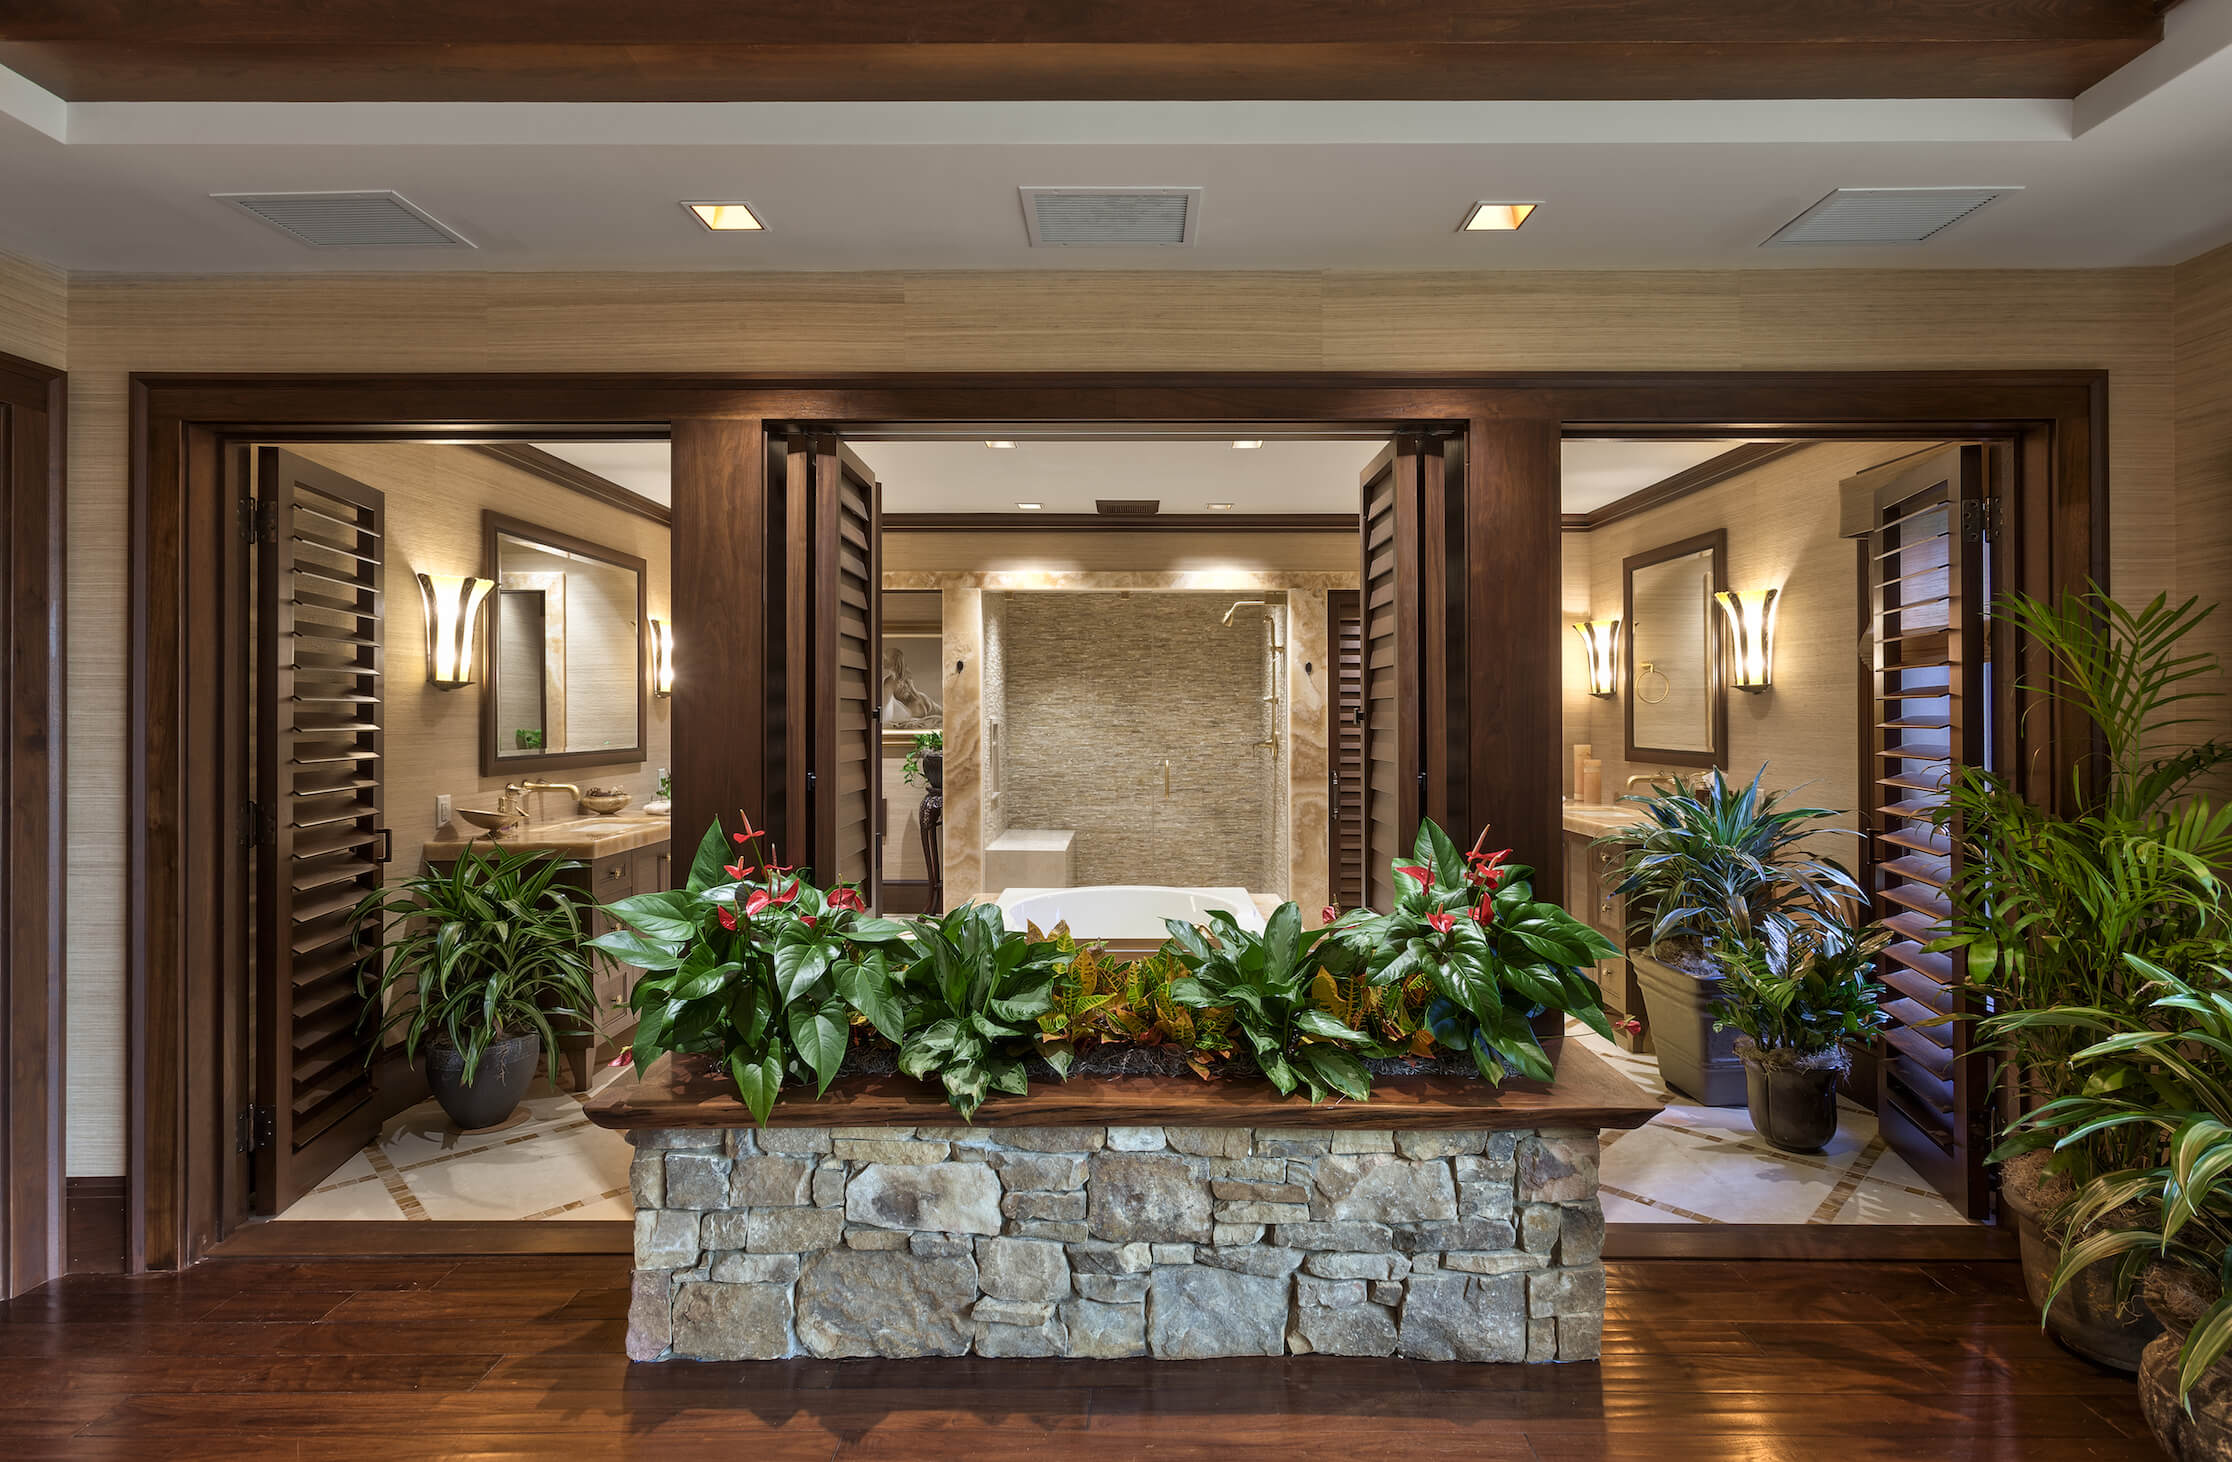 This area is the entrance to one of the vast bathrooms. A stone wrapped planter feature stands before a trio of louvered wooden doors, giving way to the bathroom itself.